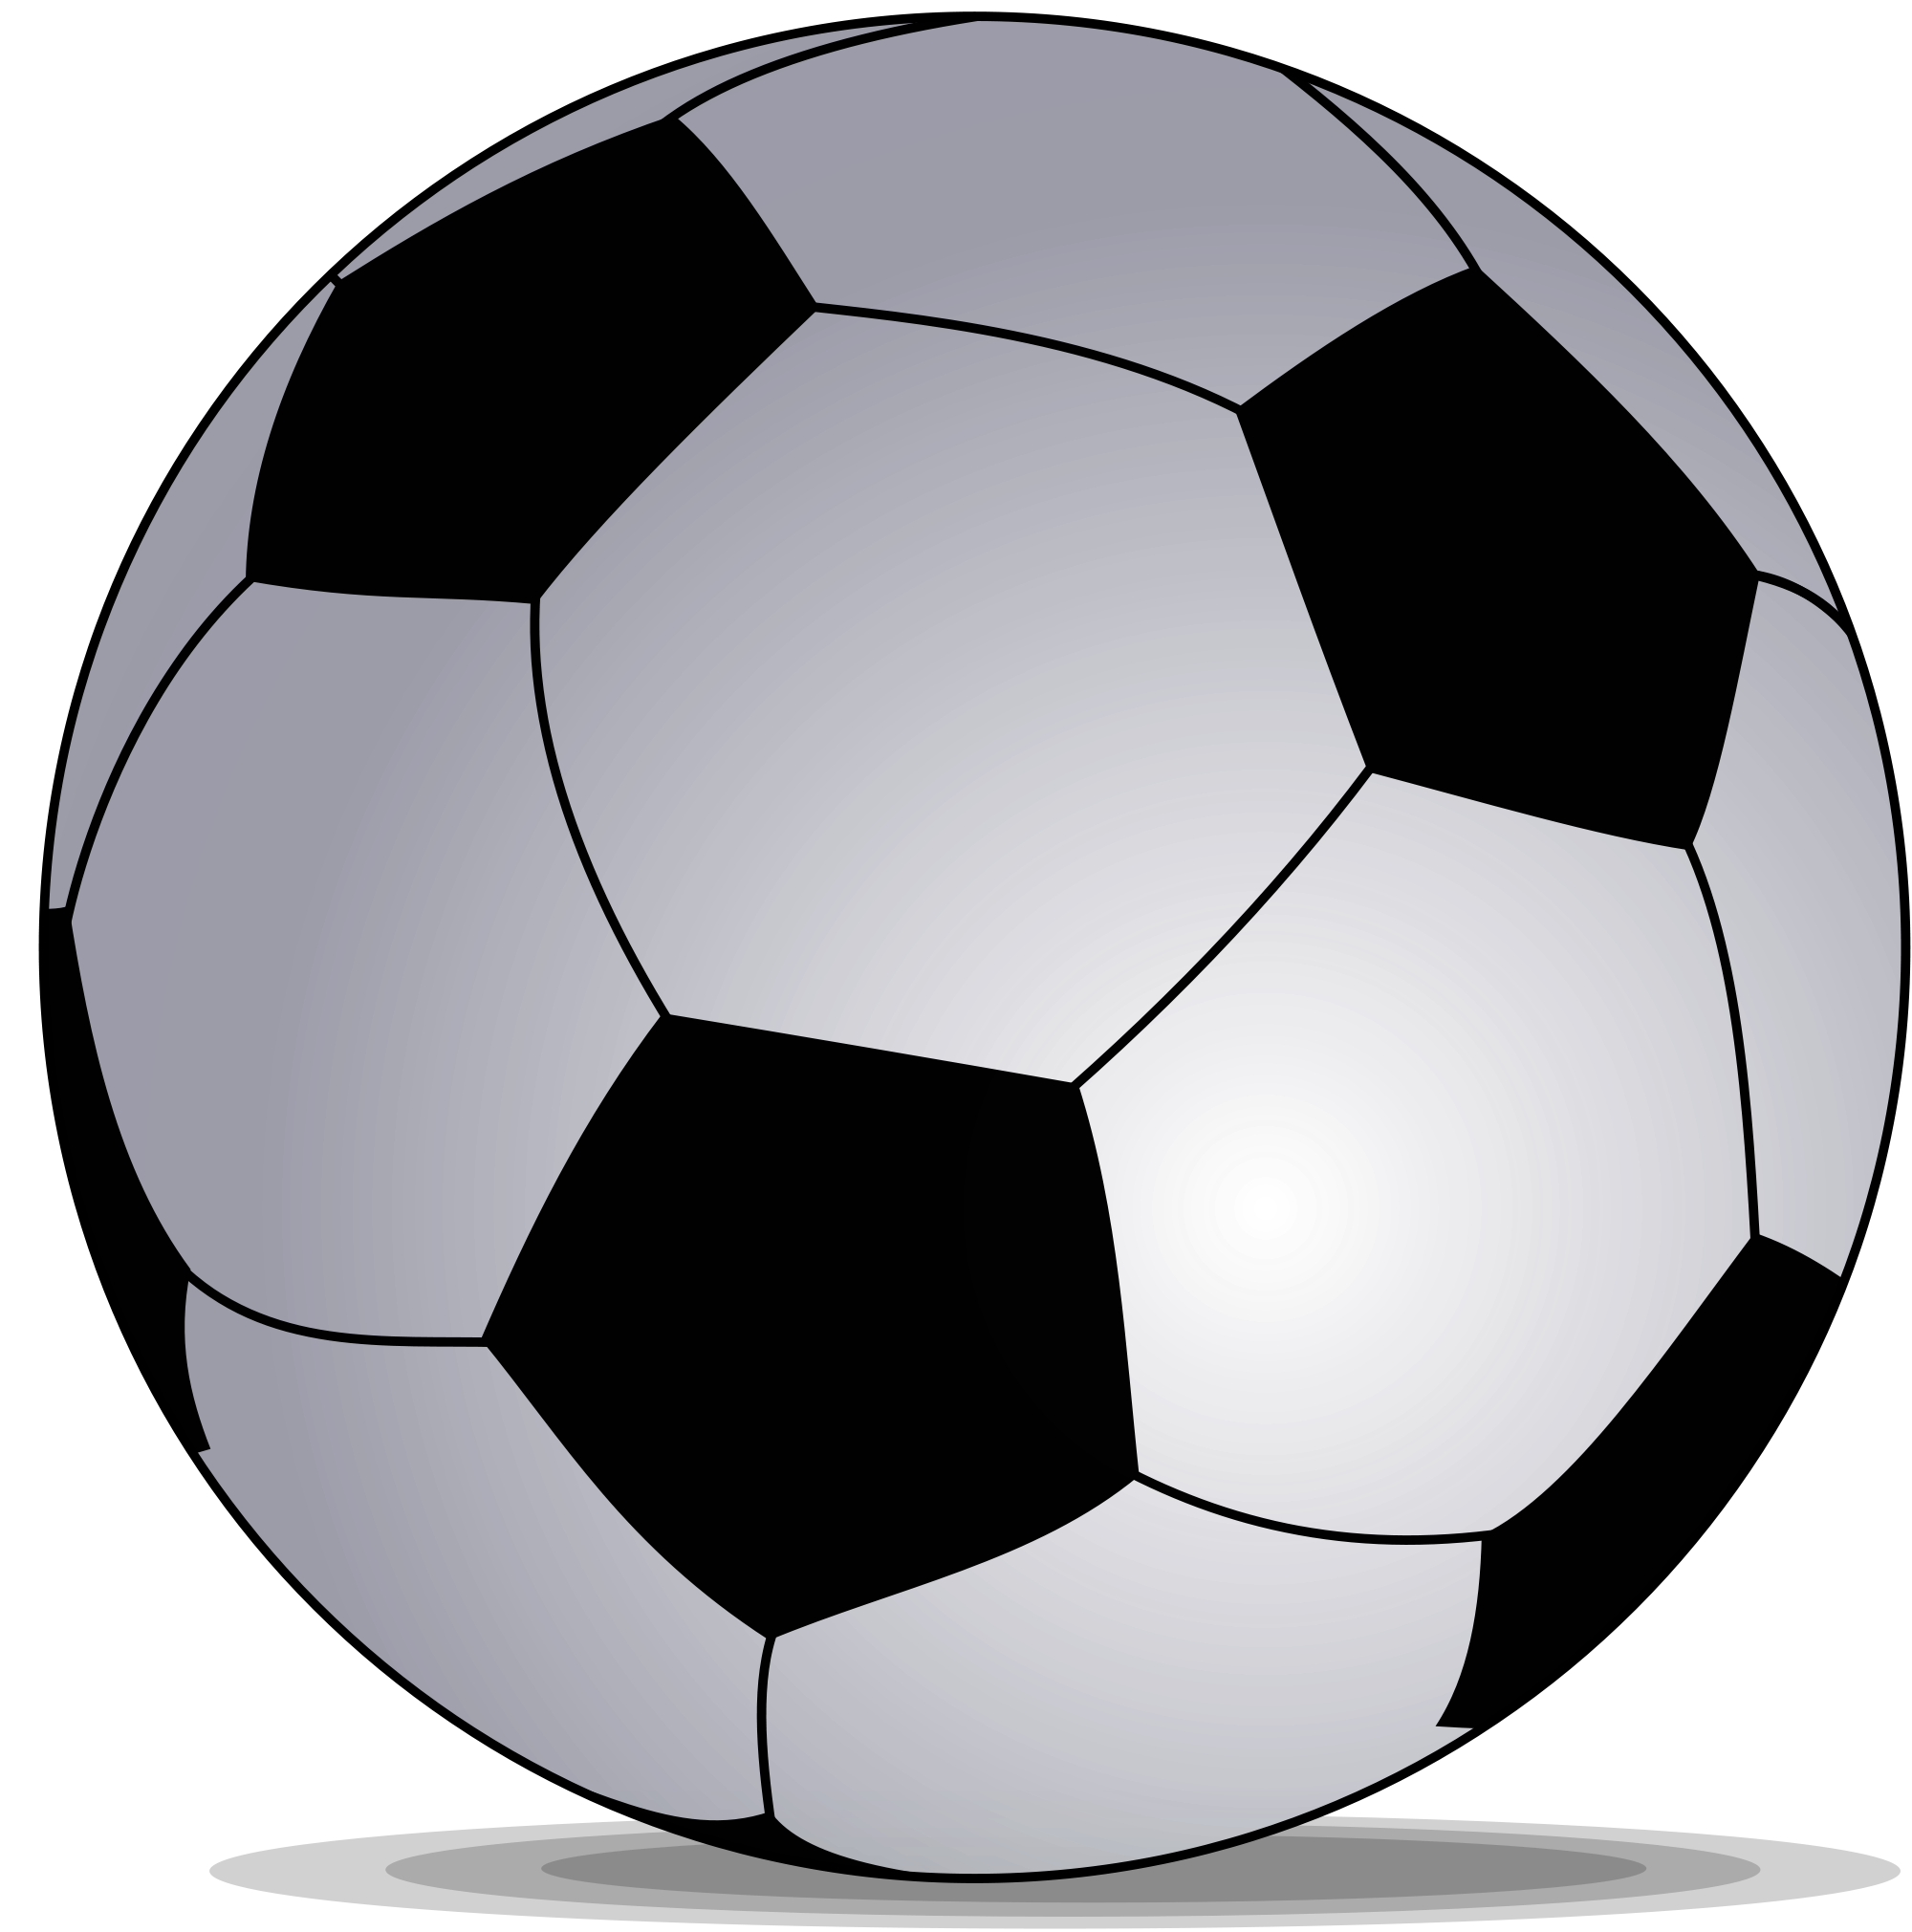 Soccer ball transparent png. File soccerball mask background